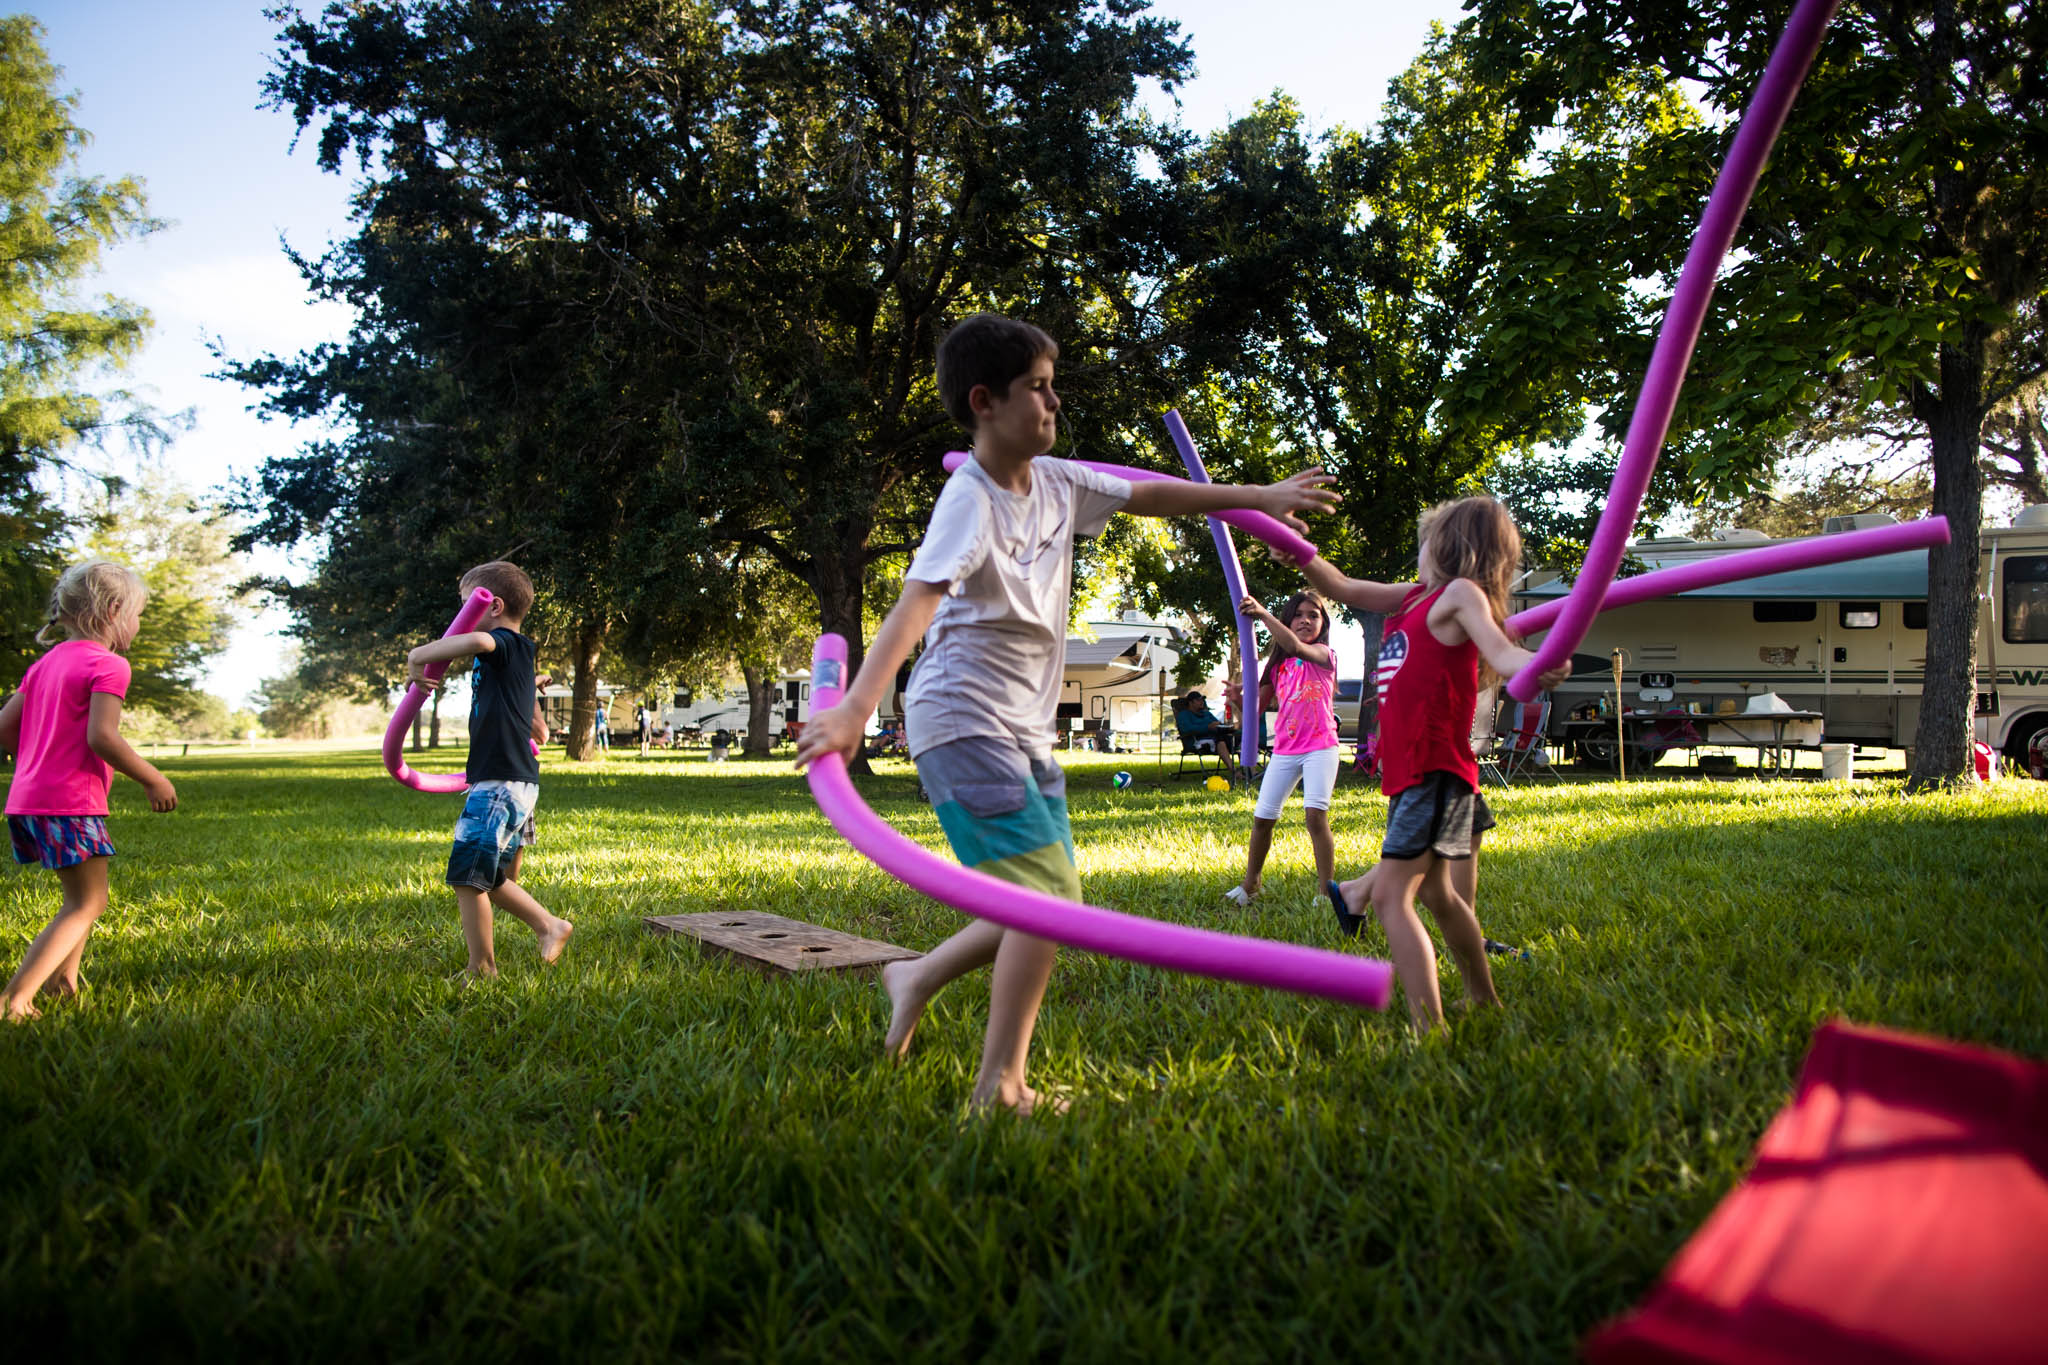 Lawren Rose Photography, a dallas family photographer, captures an image where a bunch of kids are playing and swinging pink pool noodles around